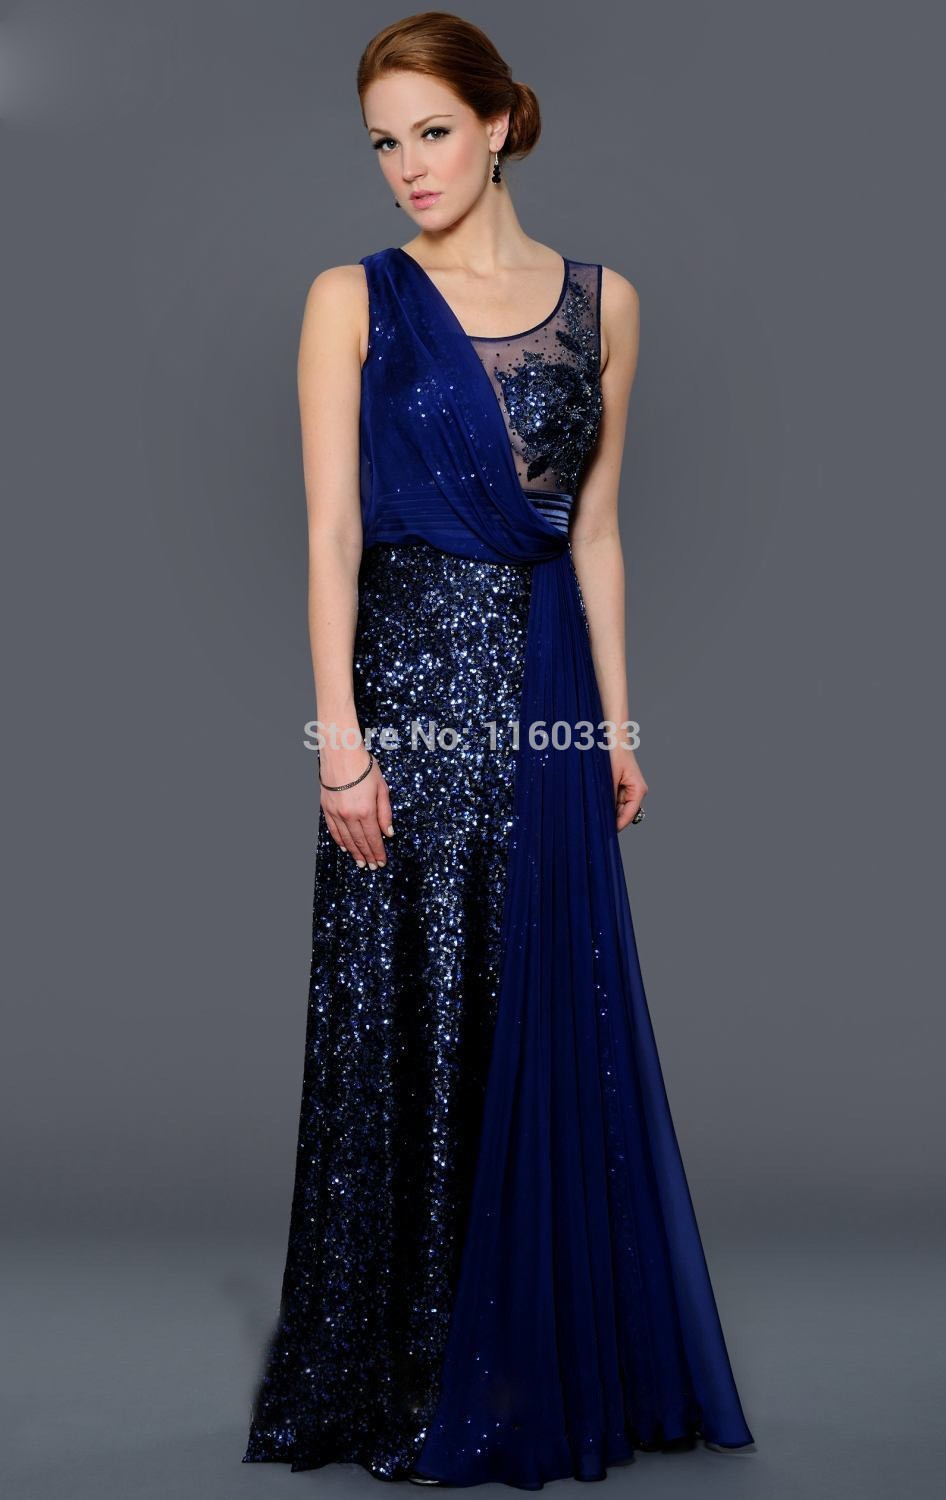 Buy formal dress online image collections dresses design ideas buy formal dress online australia images dresses design ideas buy formal dress online image collections dresses ombrellifo Image collections